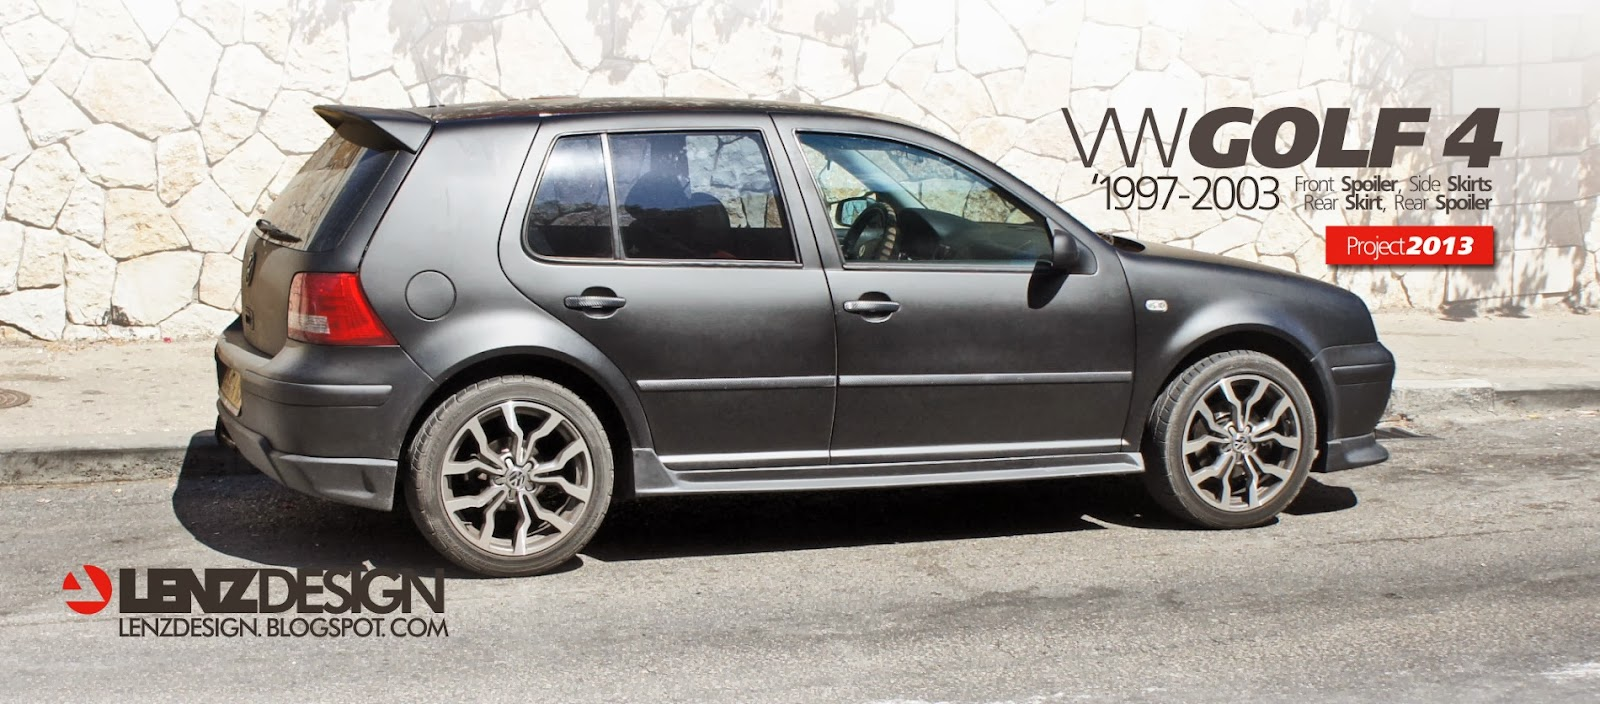 small resolution of vw golf 4 tuning lenzdesign